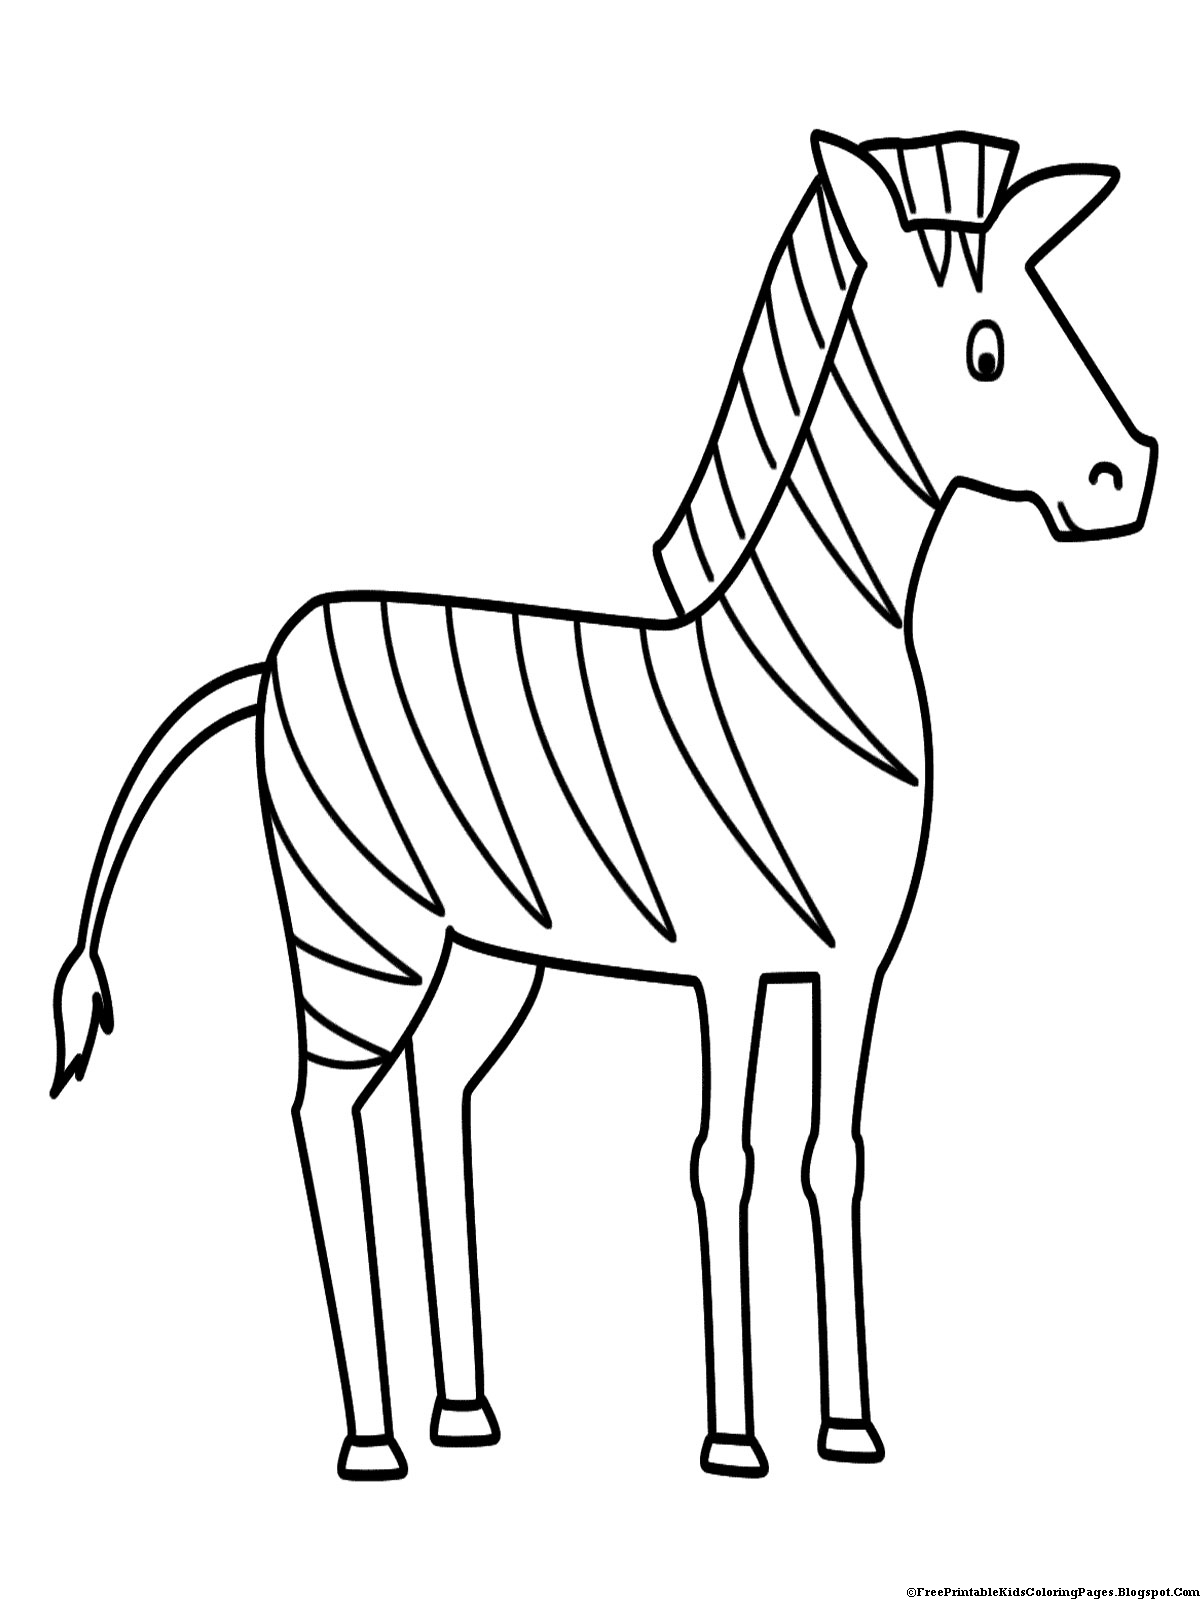 Coloring pages zebra - Zebra Animals Coloring Pages